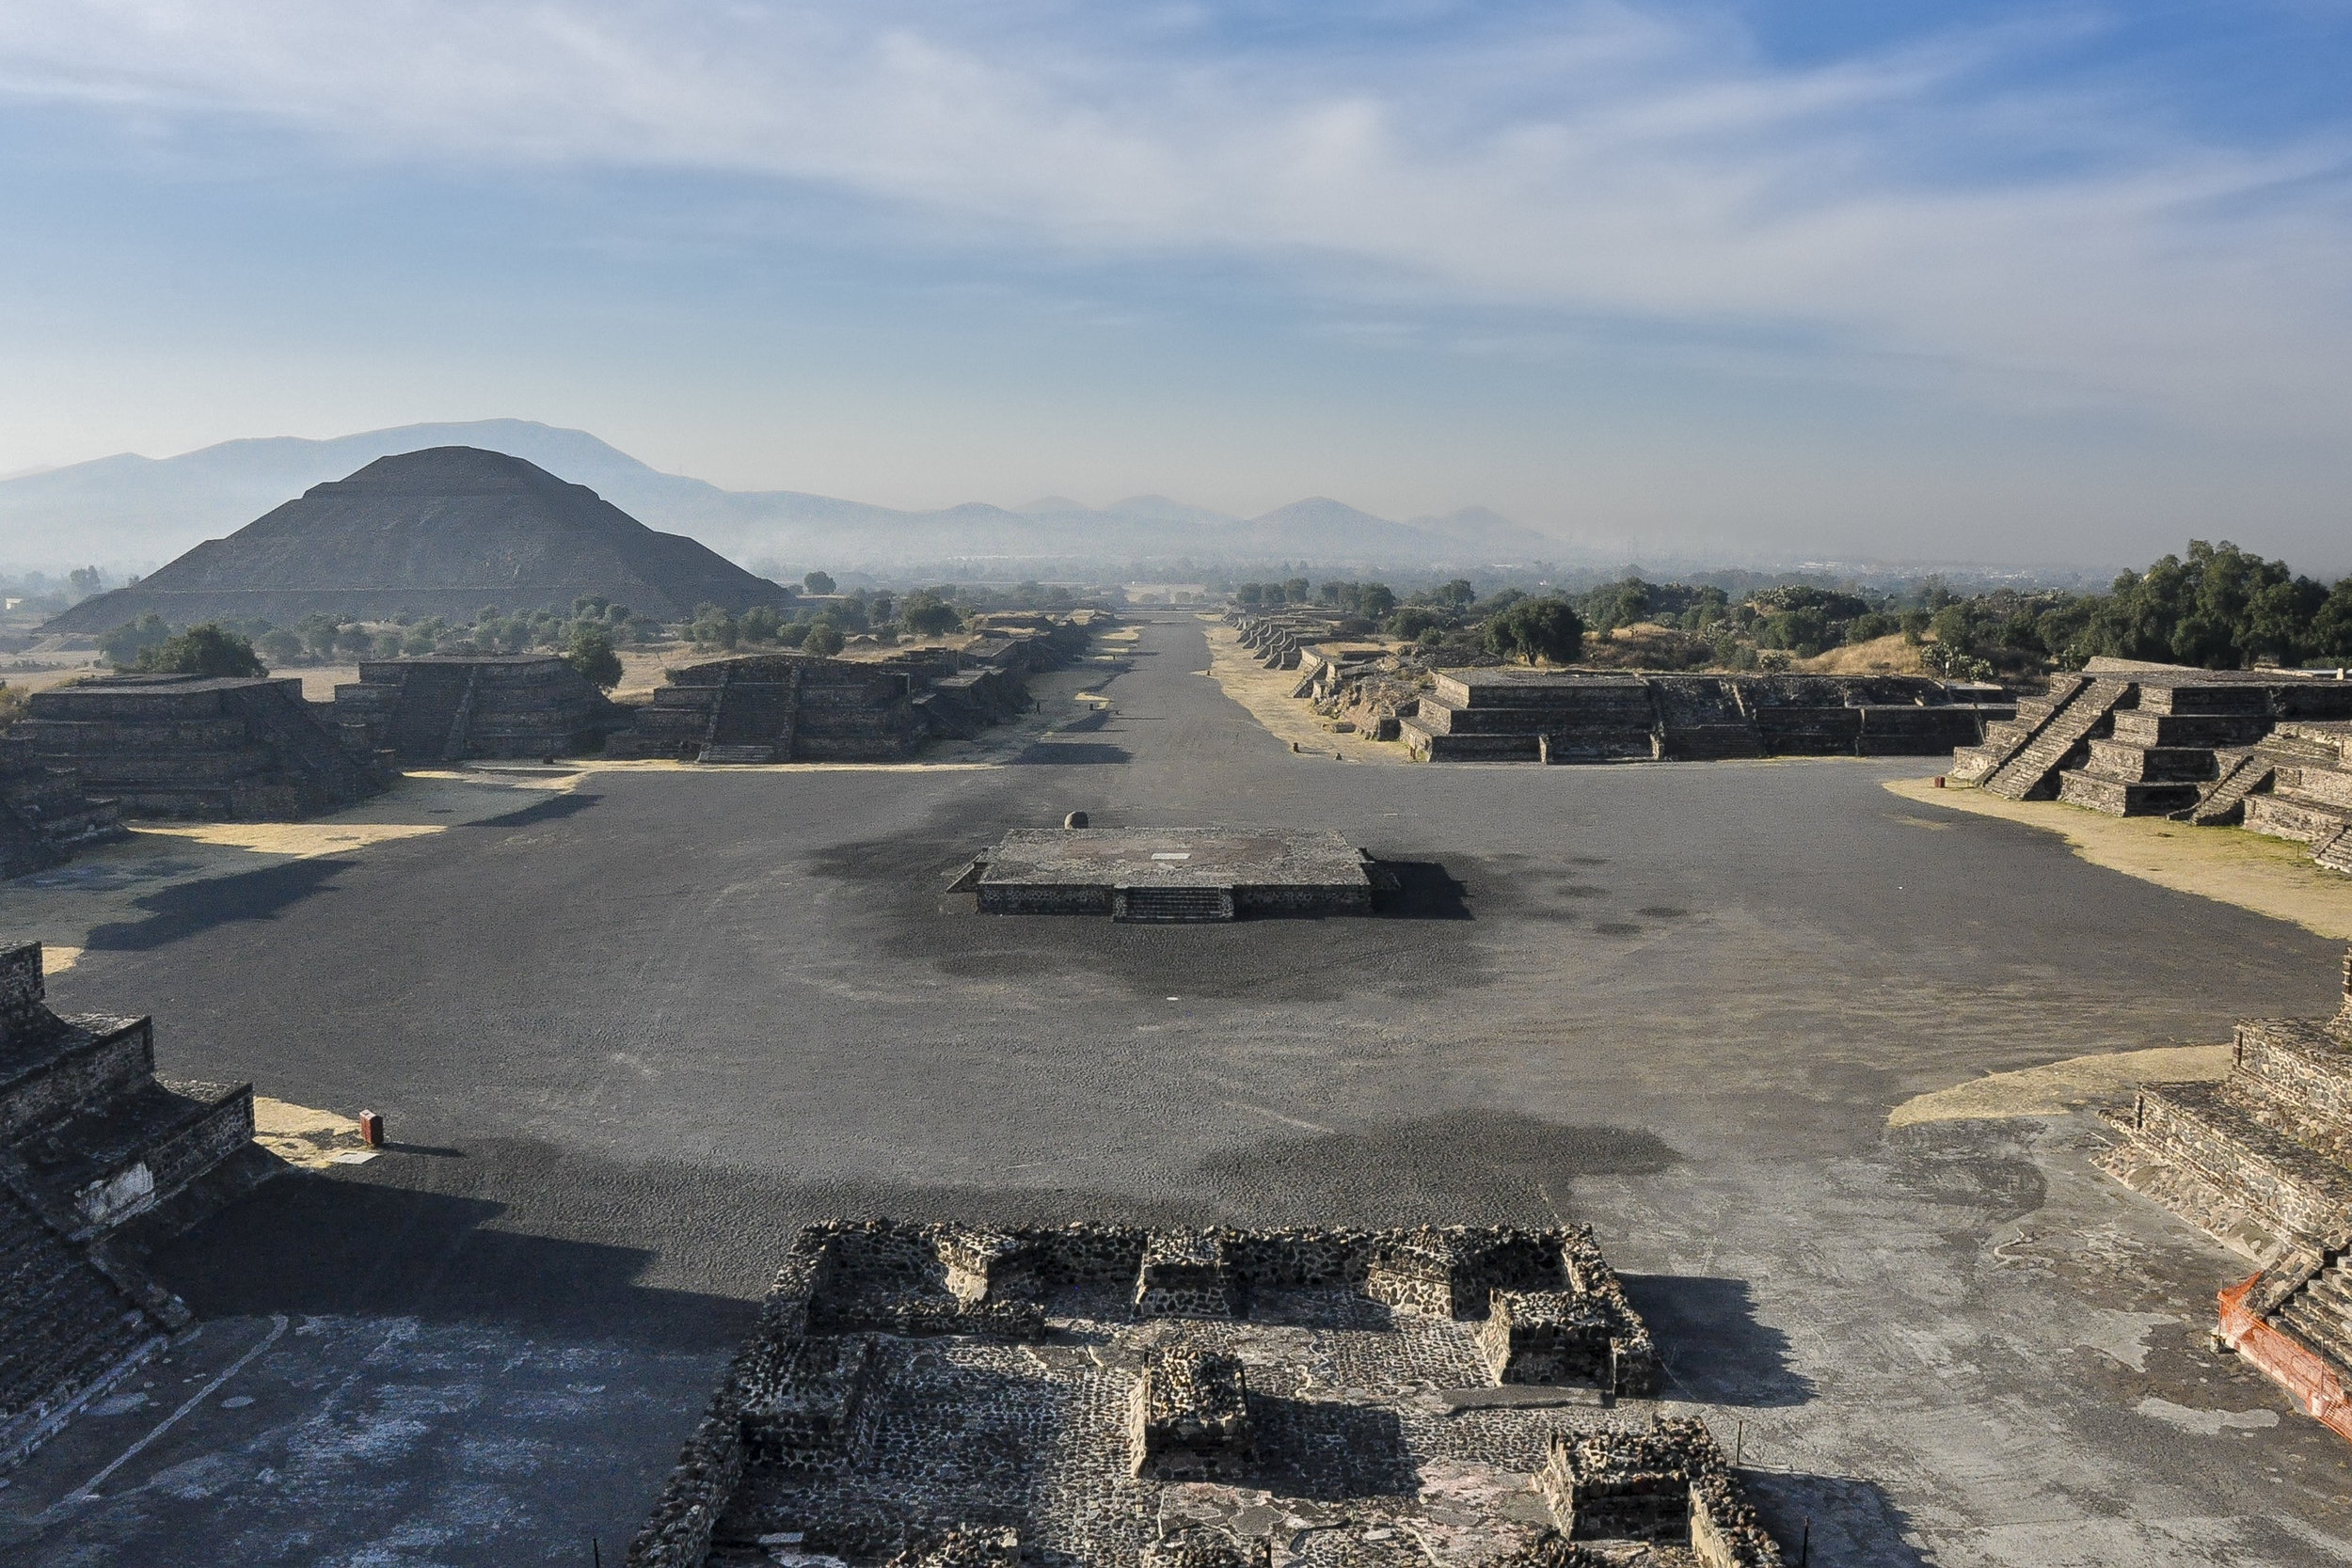 Avenue of the Dead - Teotihuacán